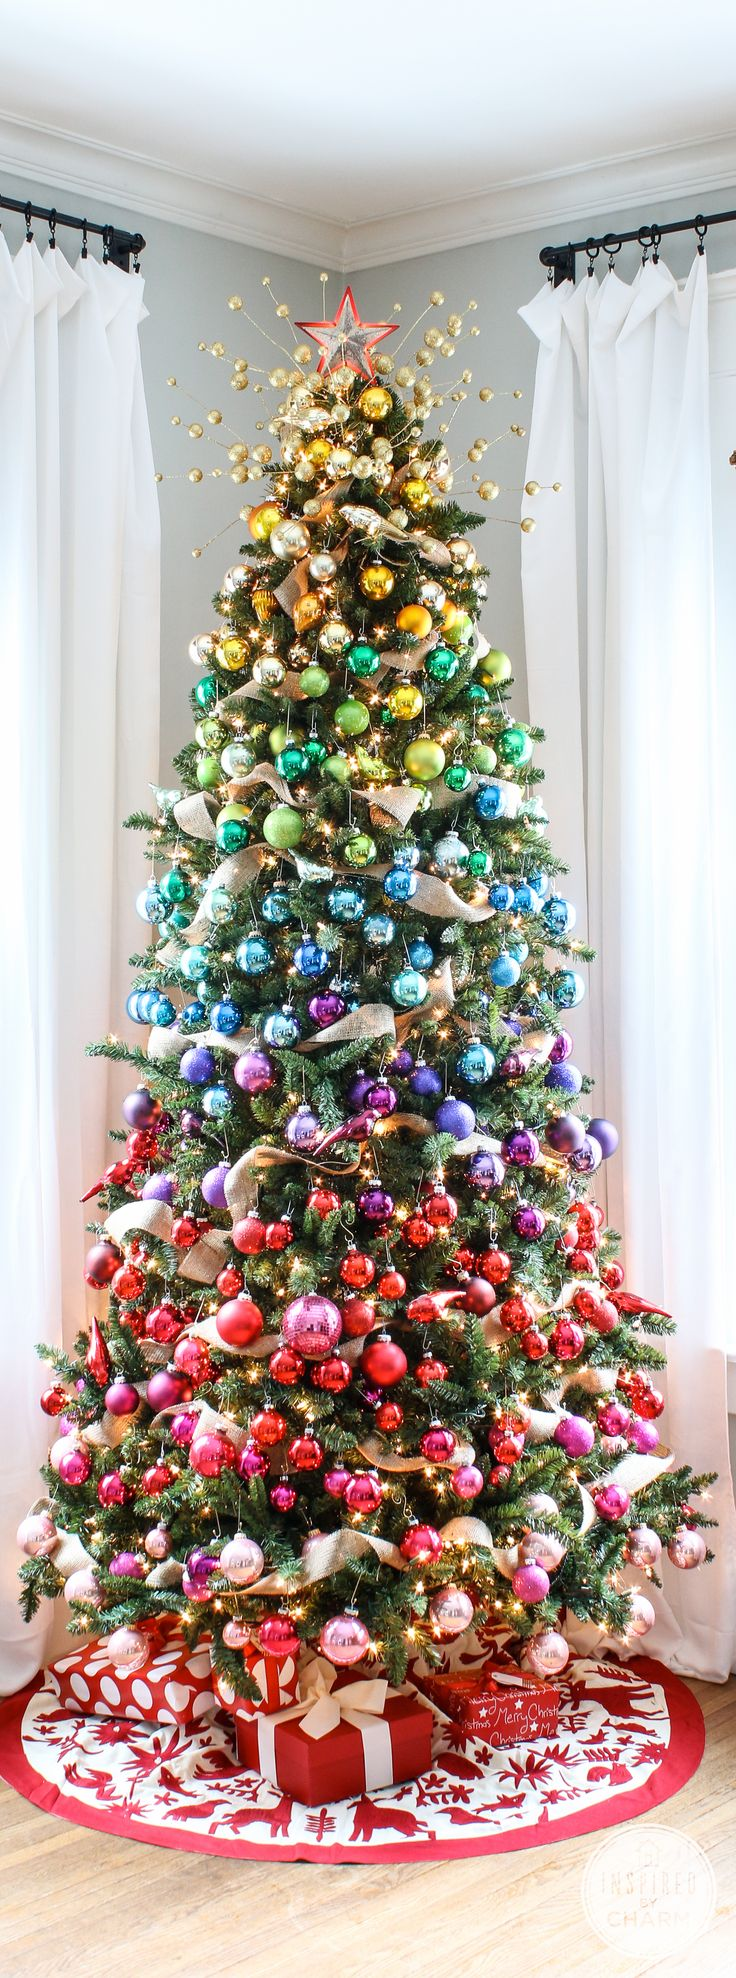 Amazing rainbow ombre Christmas tree